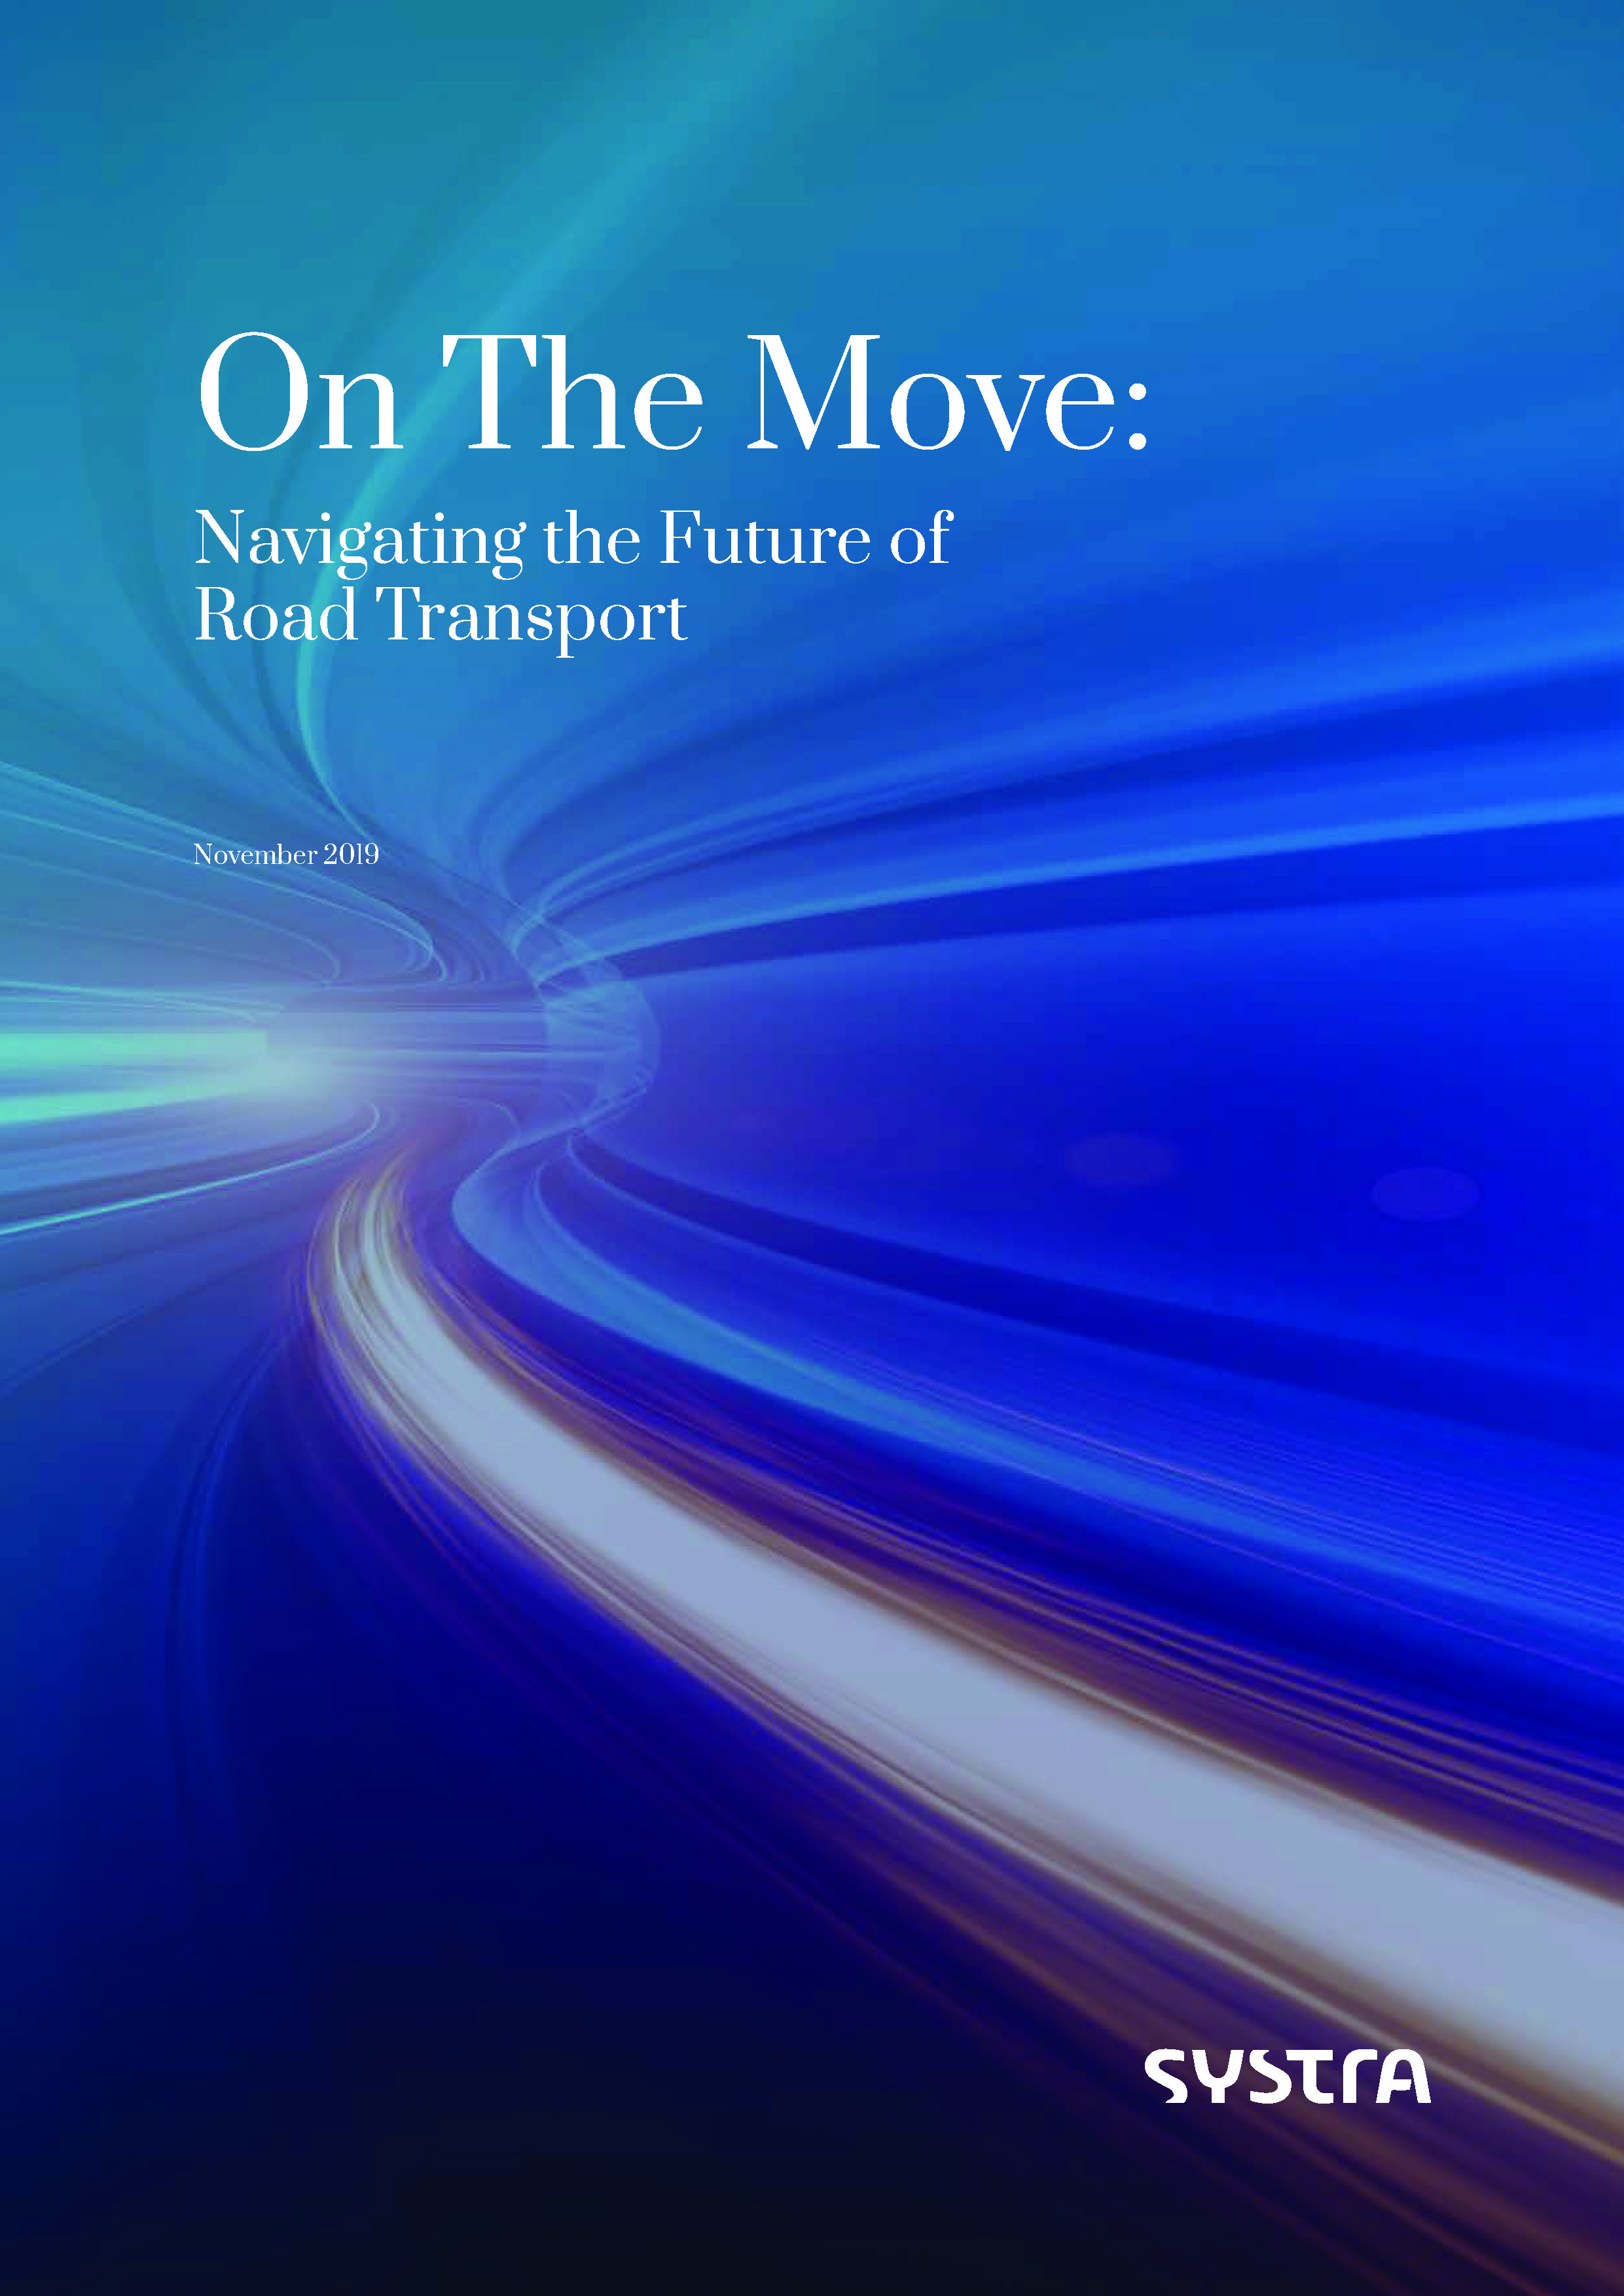 On The Move: Navigating the Future of Road Transport